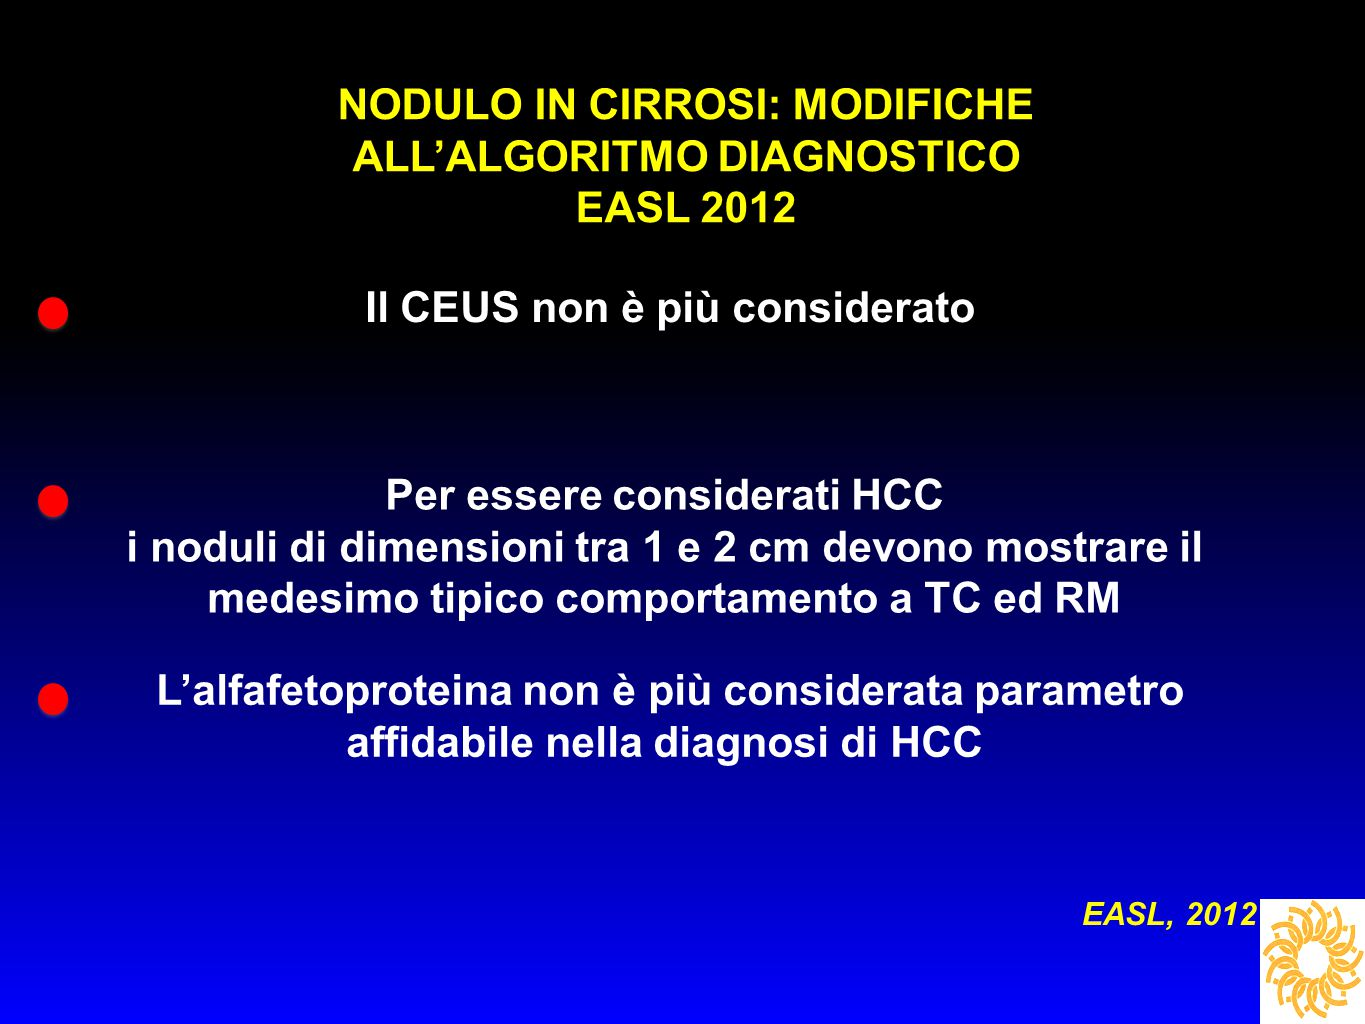 NODULO IN CIRROSI: MODIFICHE ALL'ALGORITMO DIAGNOSTICO EASL 2012